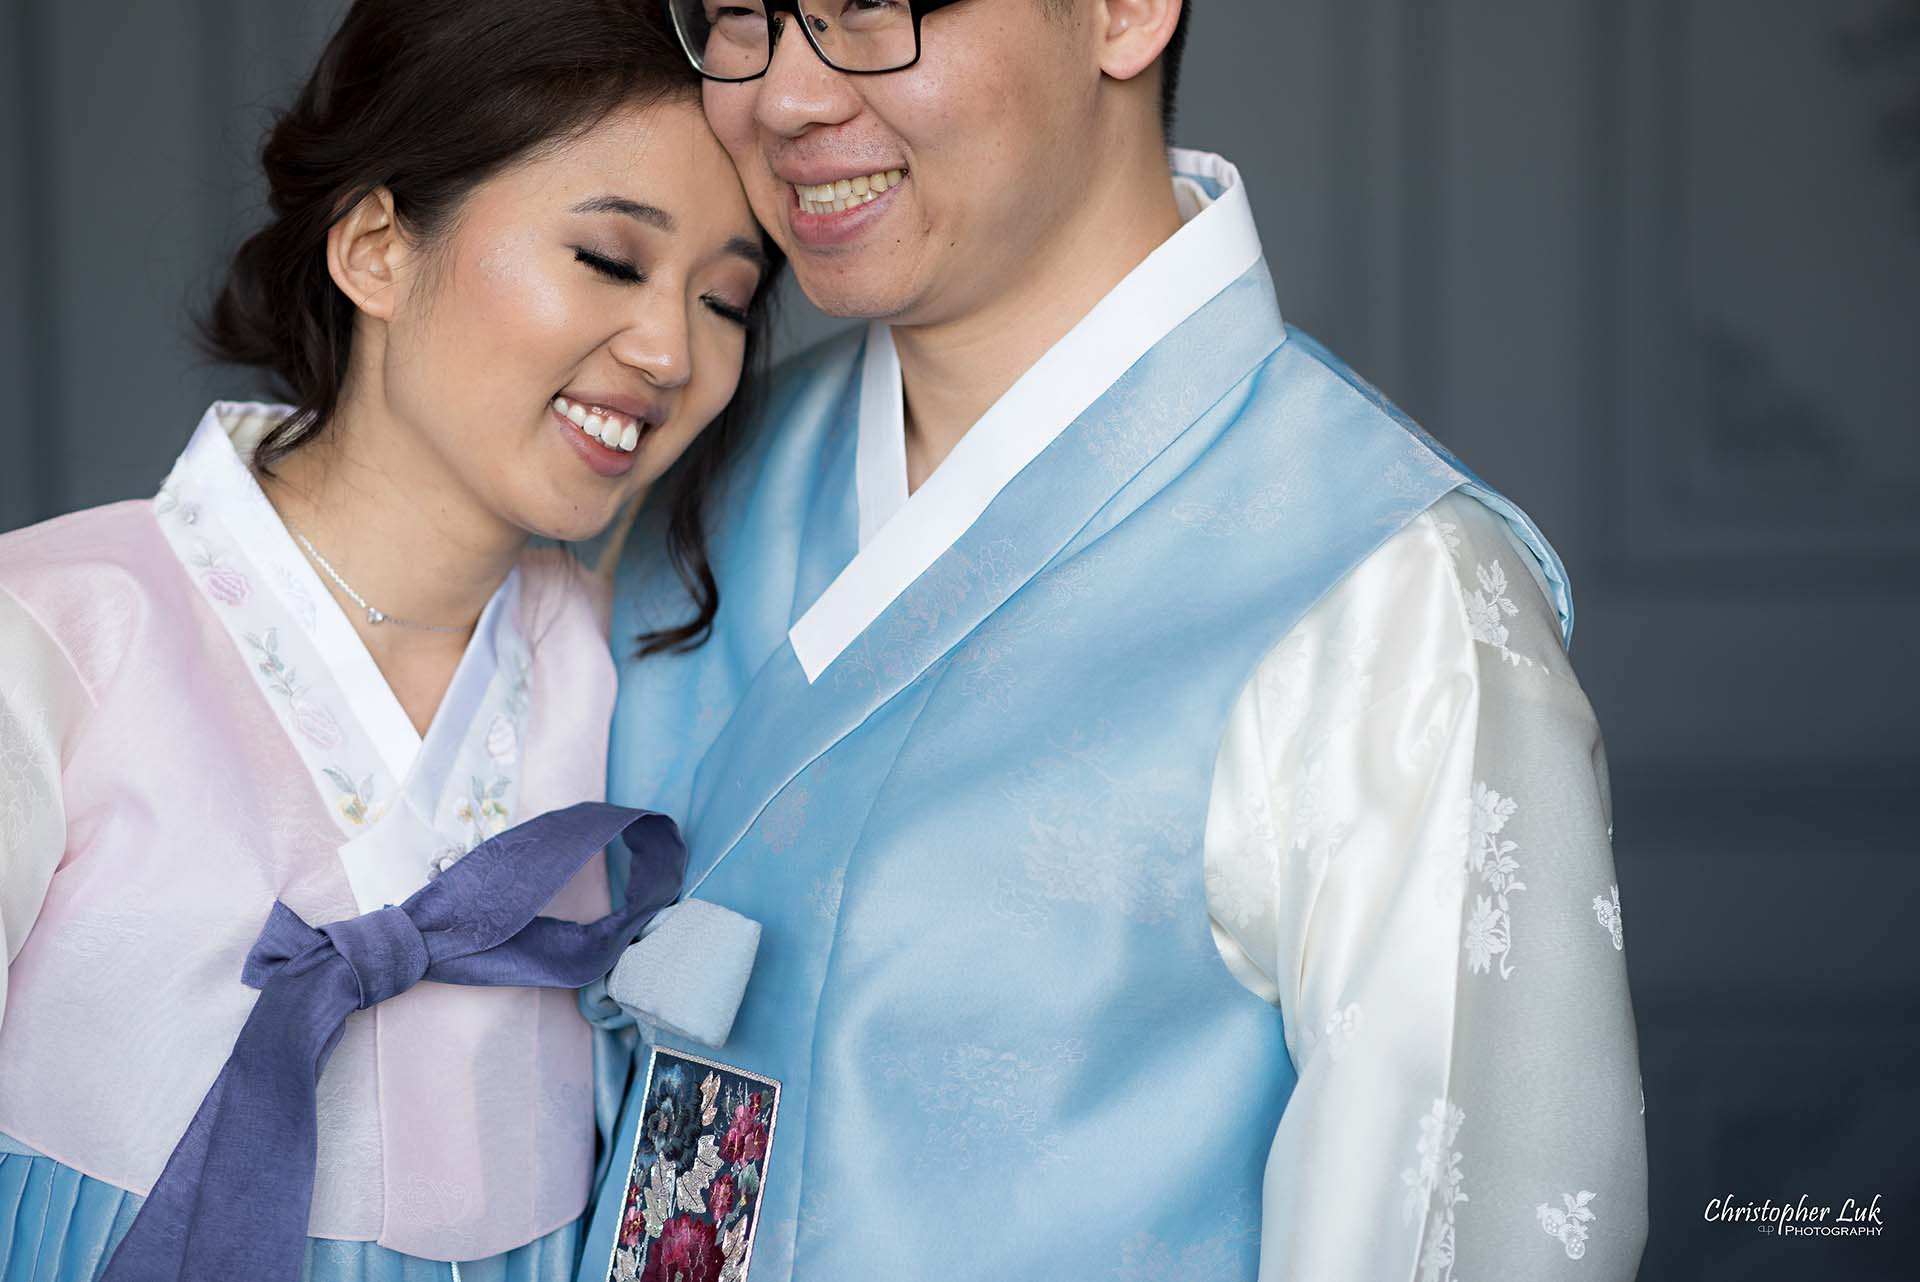 Christopher Luk Toronto Wedding Photographer - Mint Room Studios Bride Groom Natural Candid Photojournalistic Library Studio Korean Drama Hanbok Rest Head Close